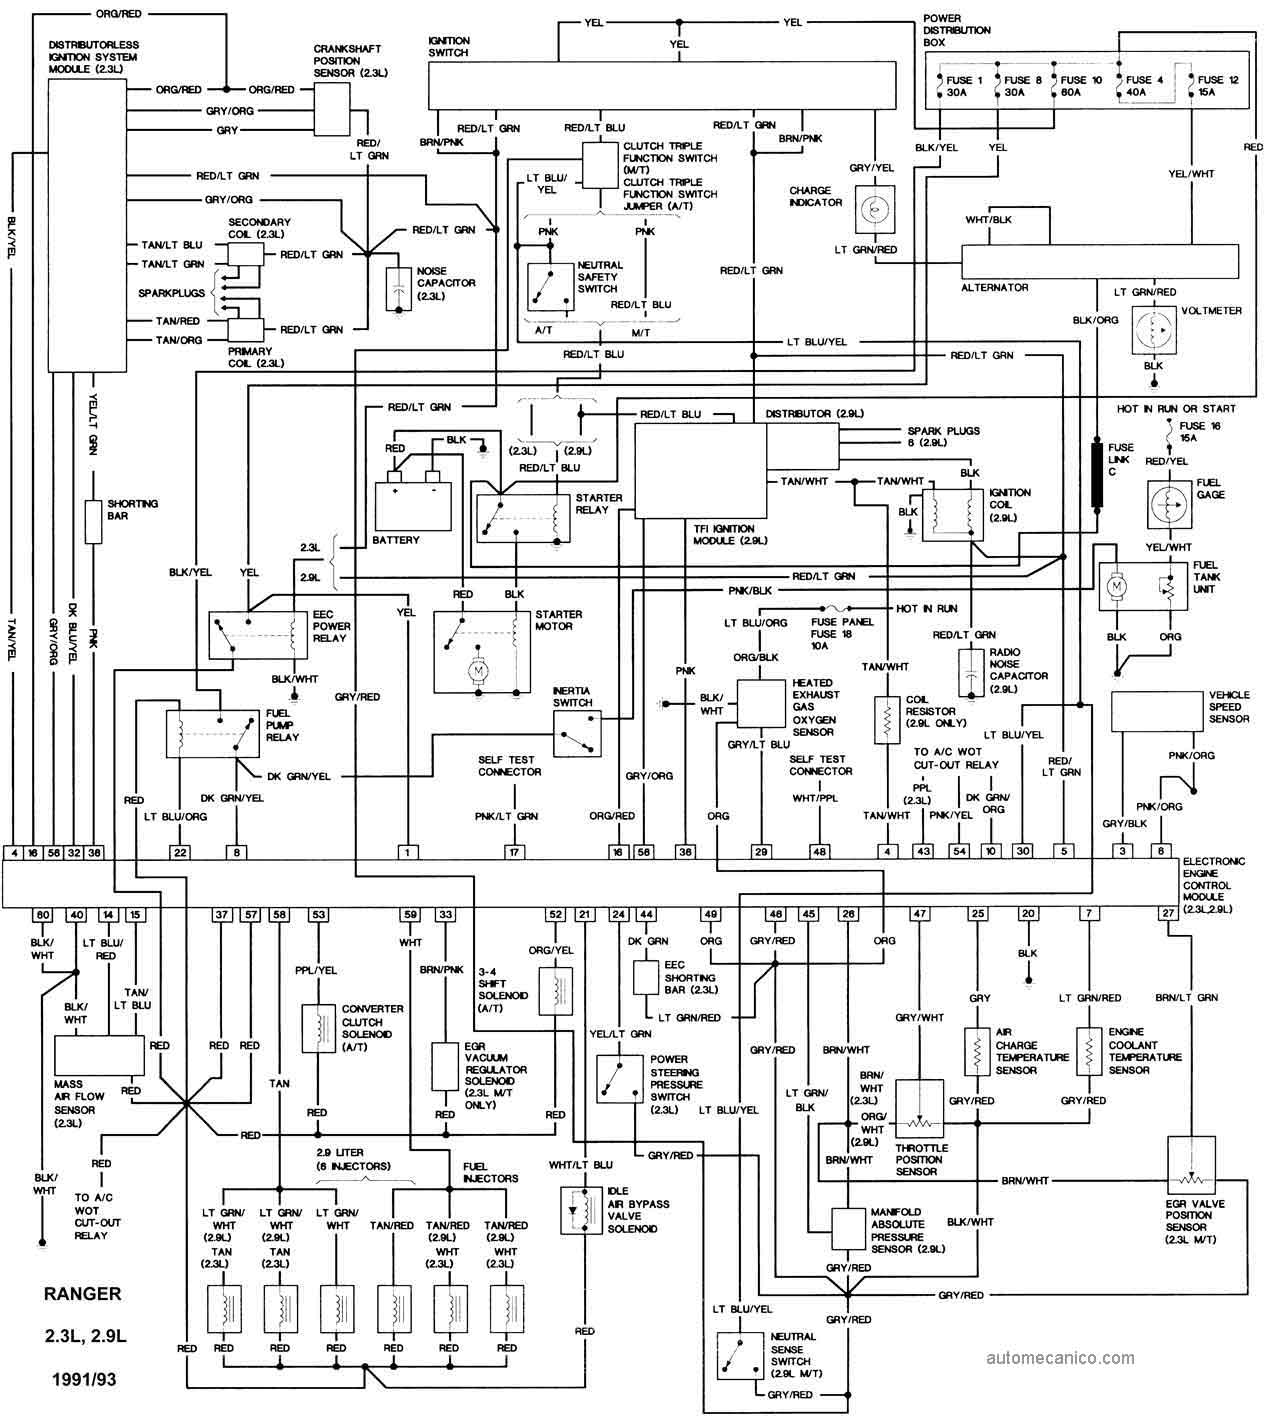 Ford Lcf Air Conditioner Wiring Diagram